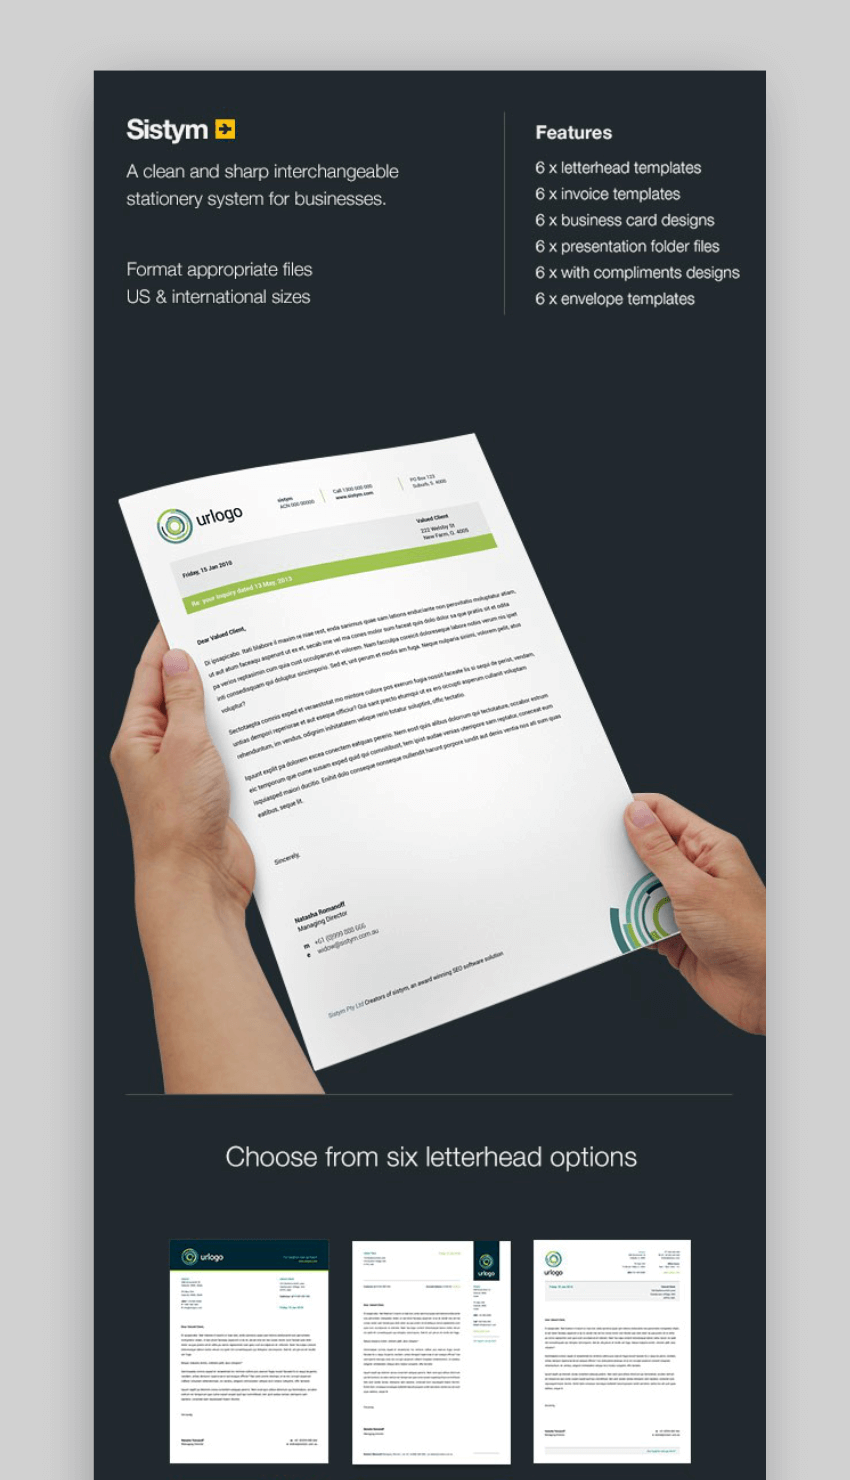 Systym - Stationery letterhead templates